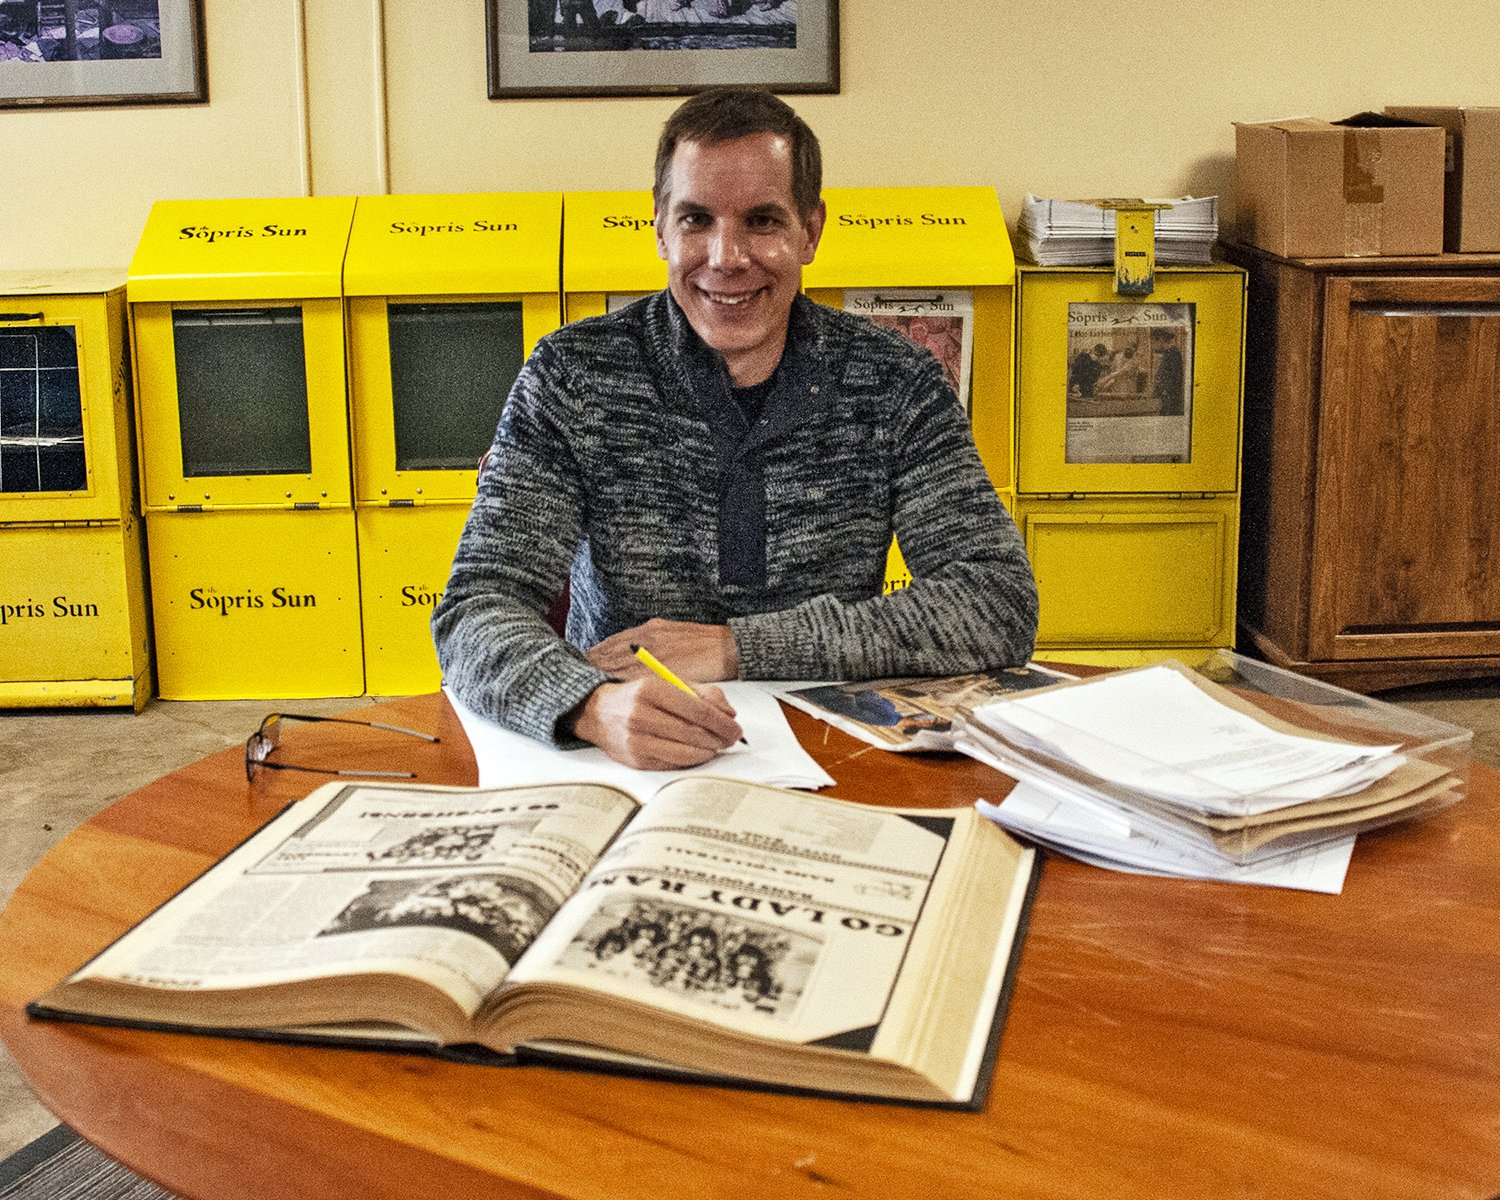 Newly-named Executive Director Todd Chamberlin works on new projects to expand the advertising and reach throughout the valley. Photo by Roberta McGowan